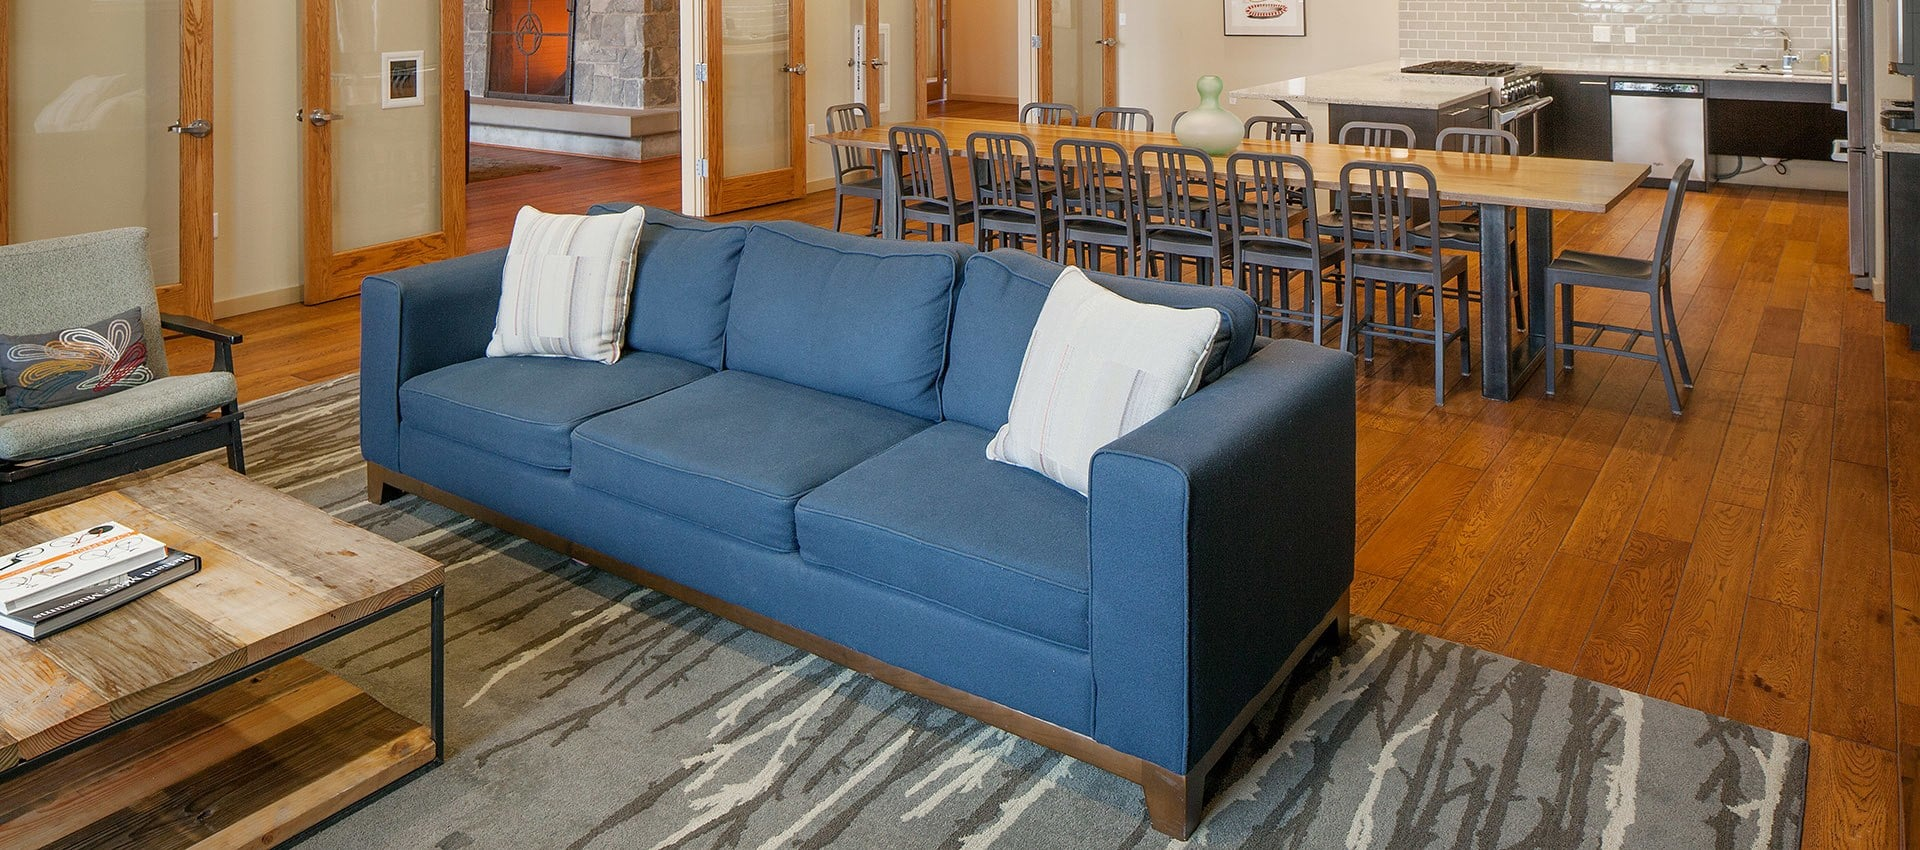 Luxurious Seating Area In Lobby at Eddyline at Bridgeport in Portland, OR